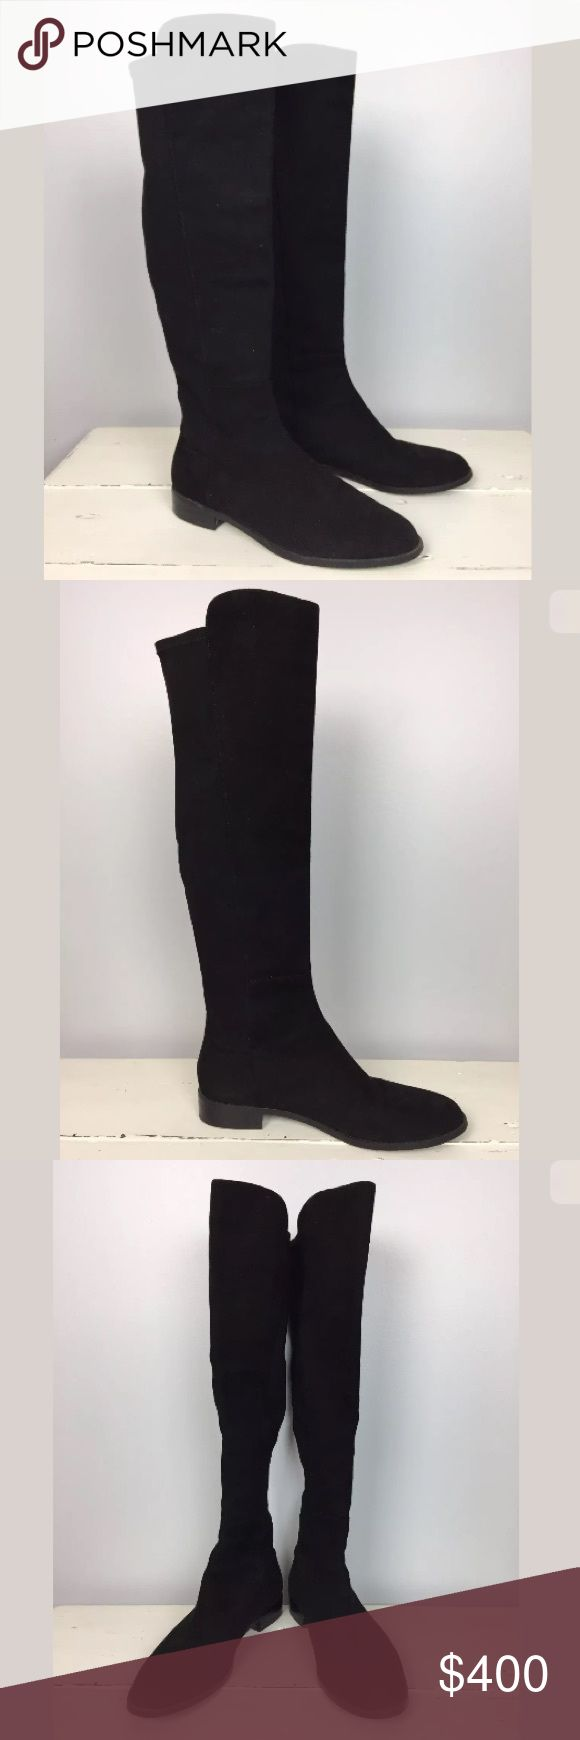 Stuart Weitzman 5050 Boots Black Suede Stuart Weitzman 5050 Boot Black Suede, VERY lightly worn & in great condition! Stuart Weitzman Shoes Over the Knee Boots